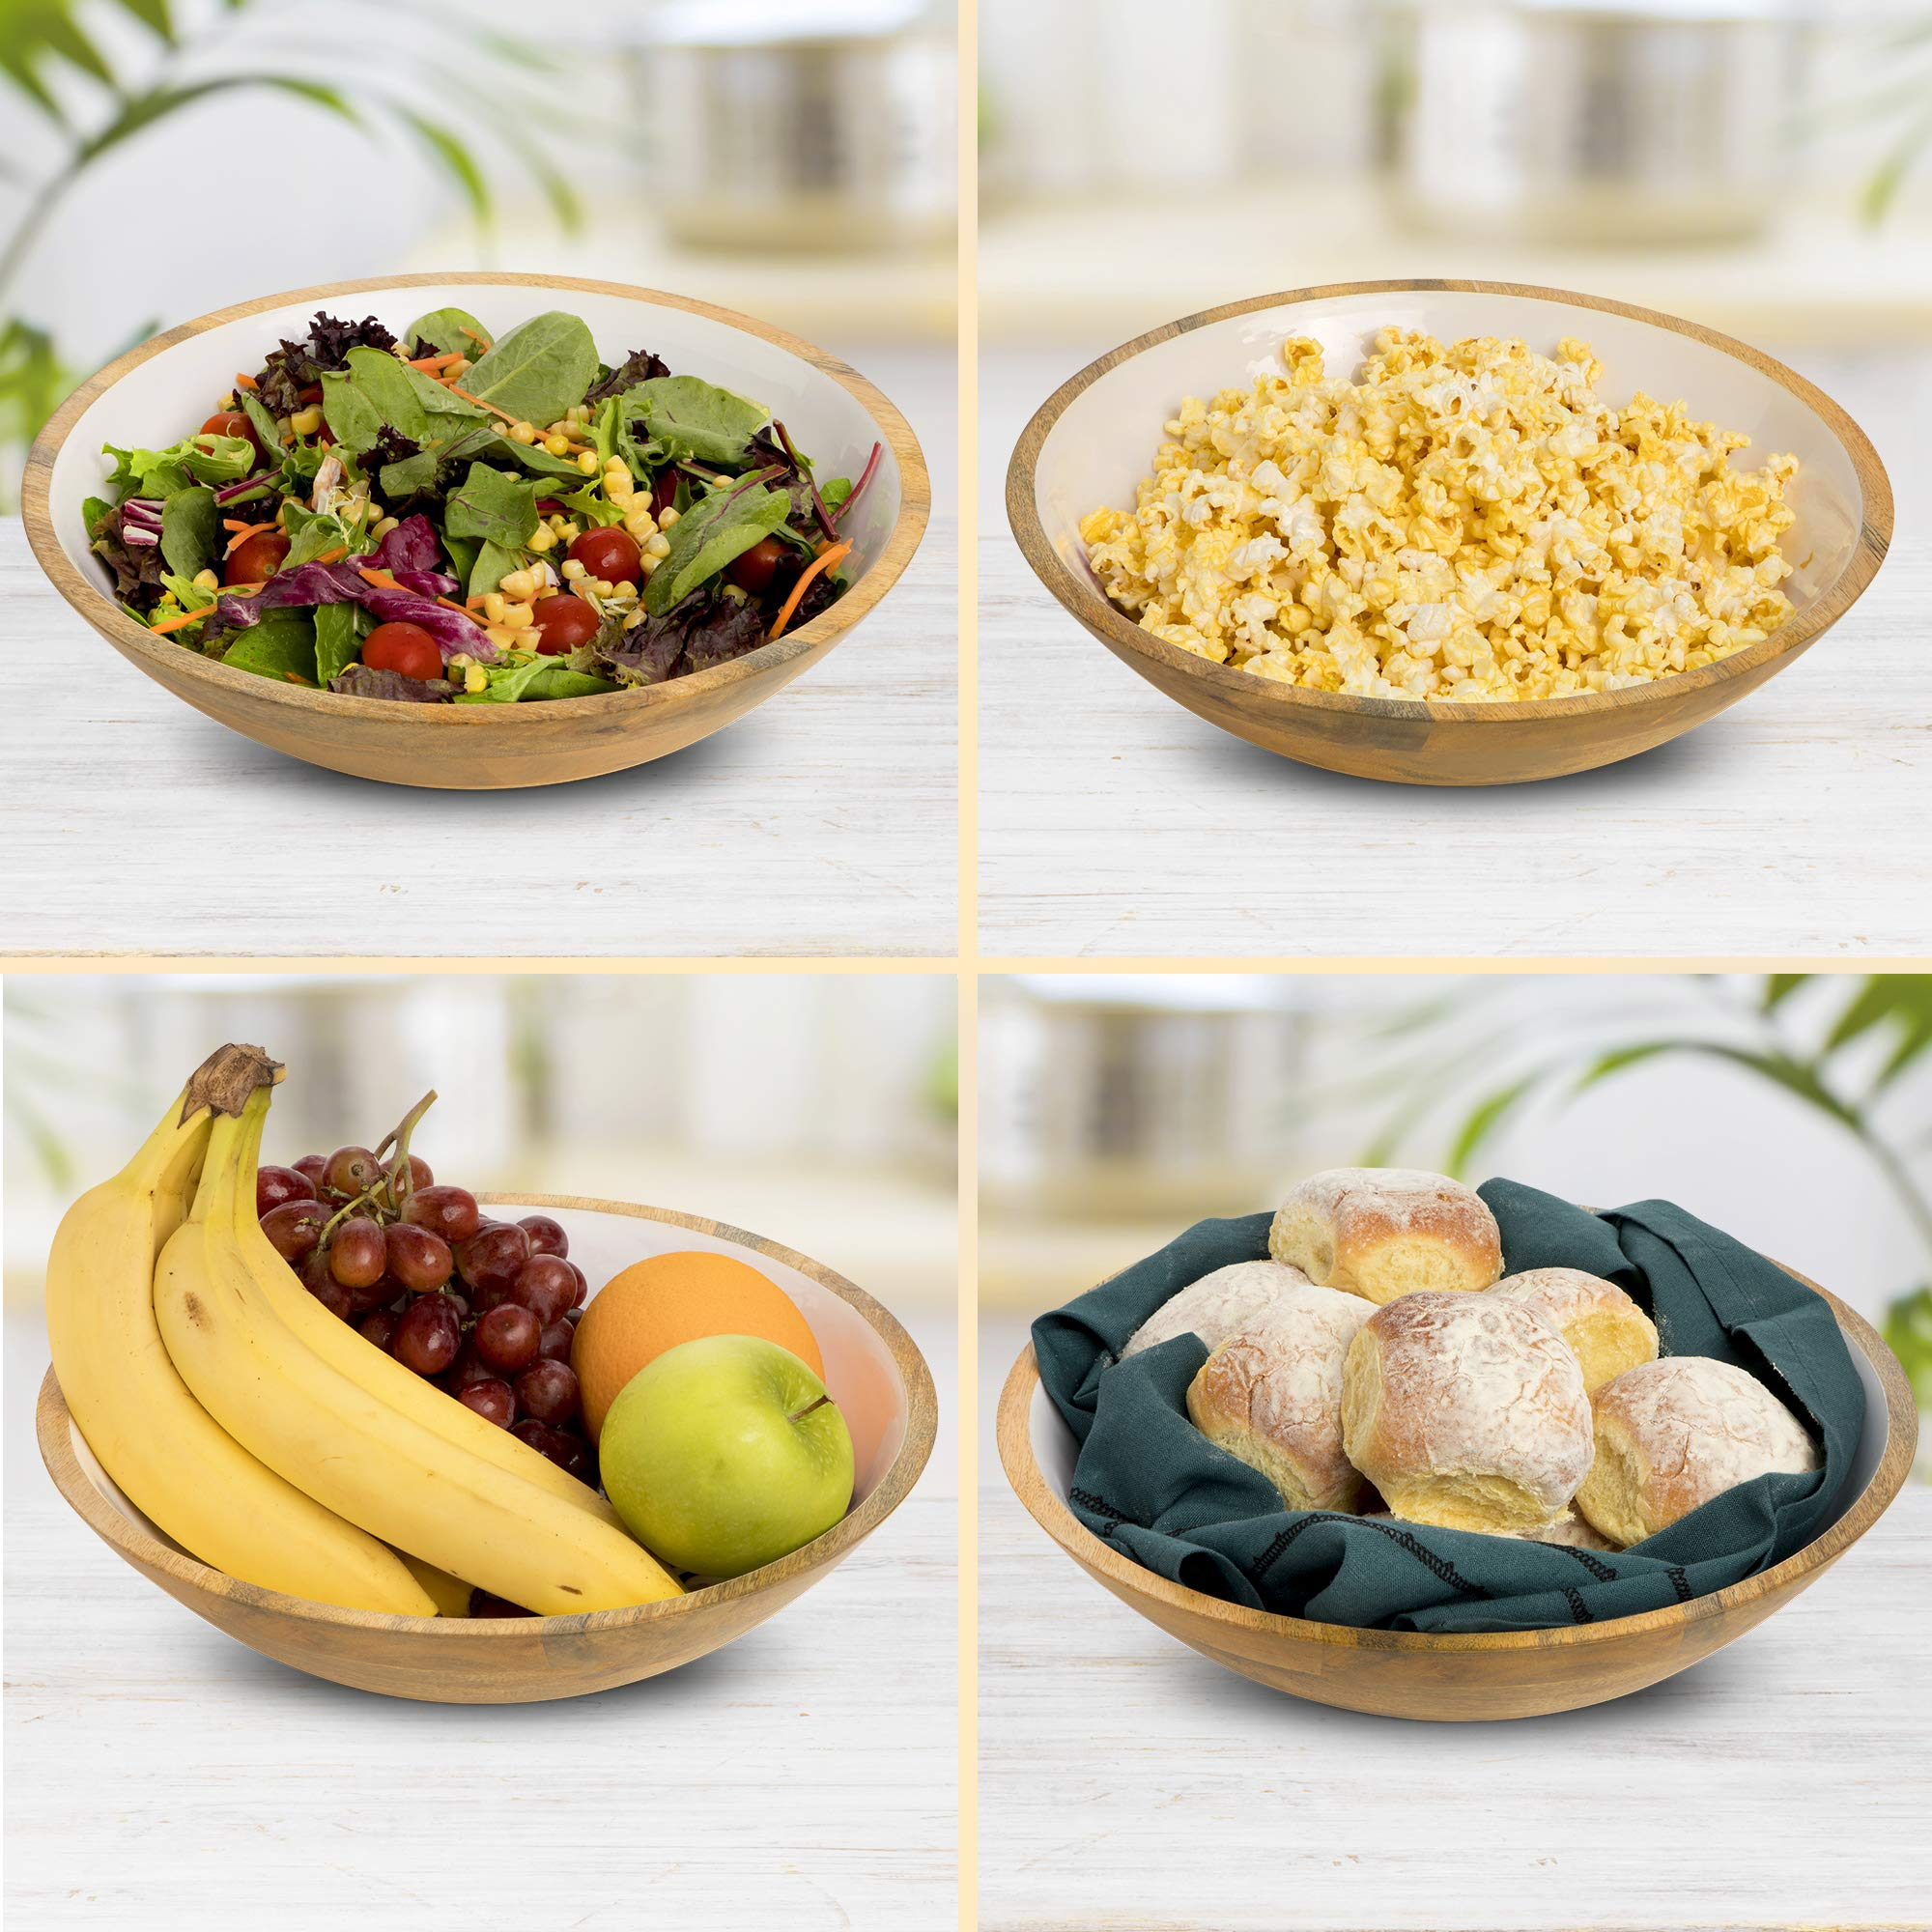 Wood Salad Bowl Set with Servers - Large 12 Inch Round Mango Wood Serving Bowl with Spoons for Soups, Fruit, Pasta, Caesar, Tossed, and Mixed Salads | Natural Mango Wood Serving Bowl Set by ELEETS COLLECTION (Image #4)